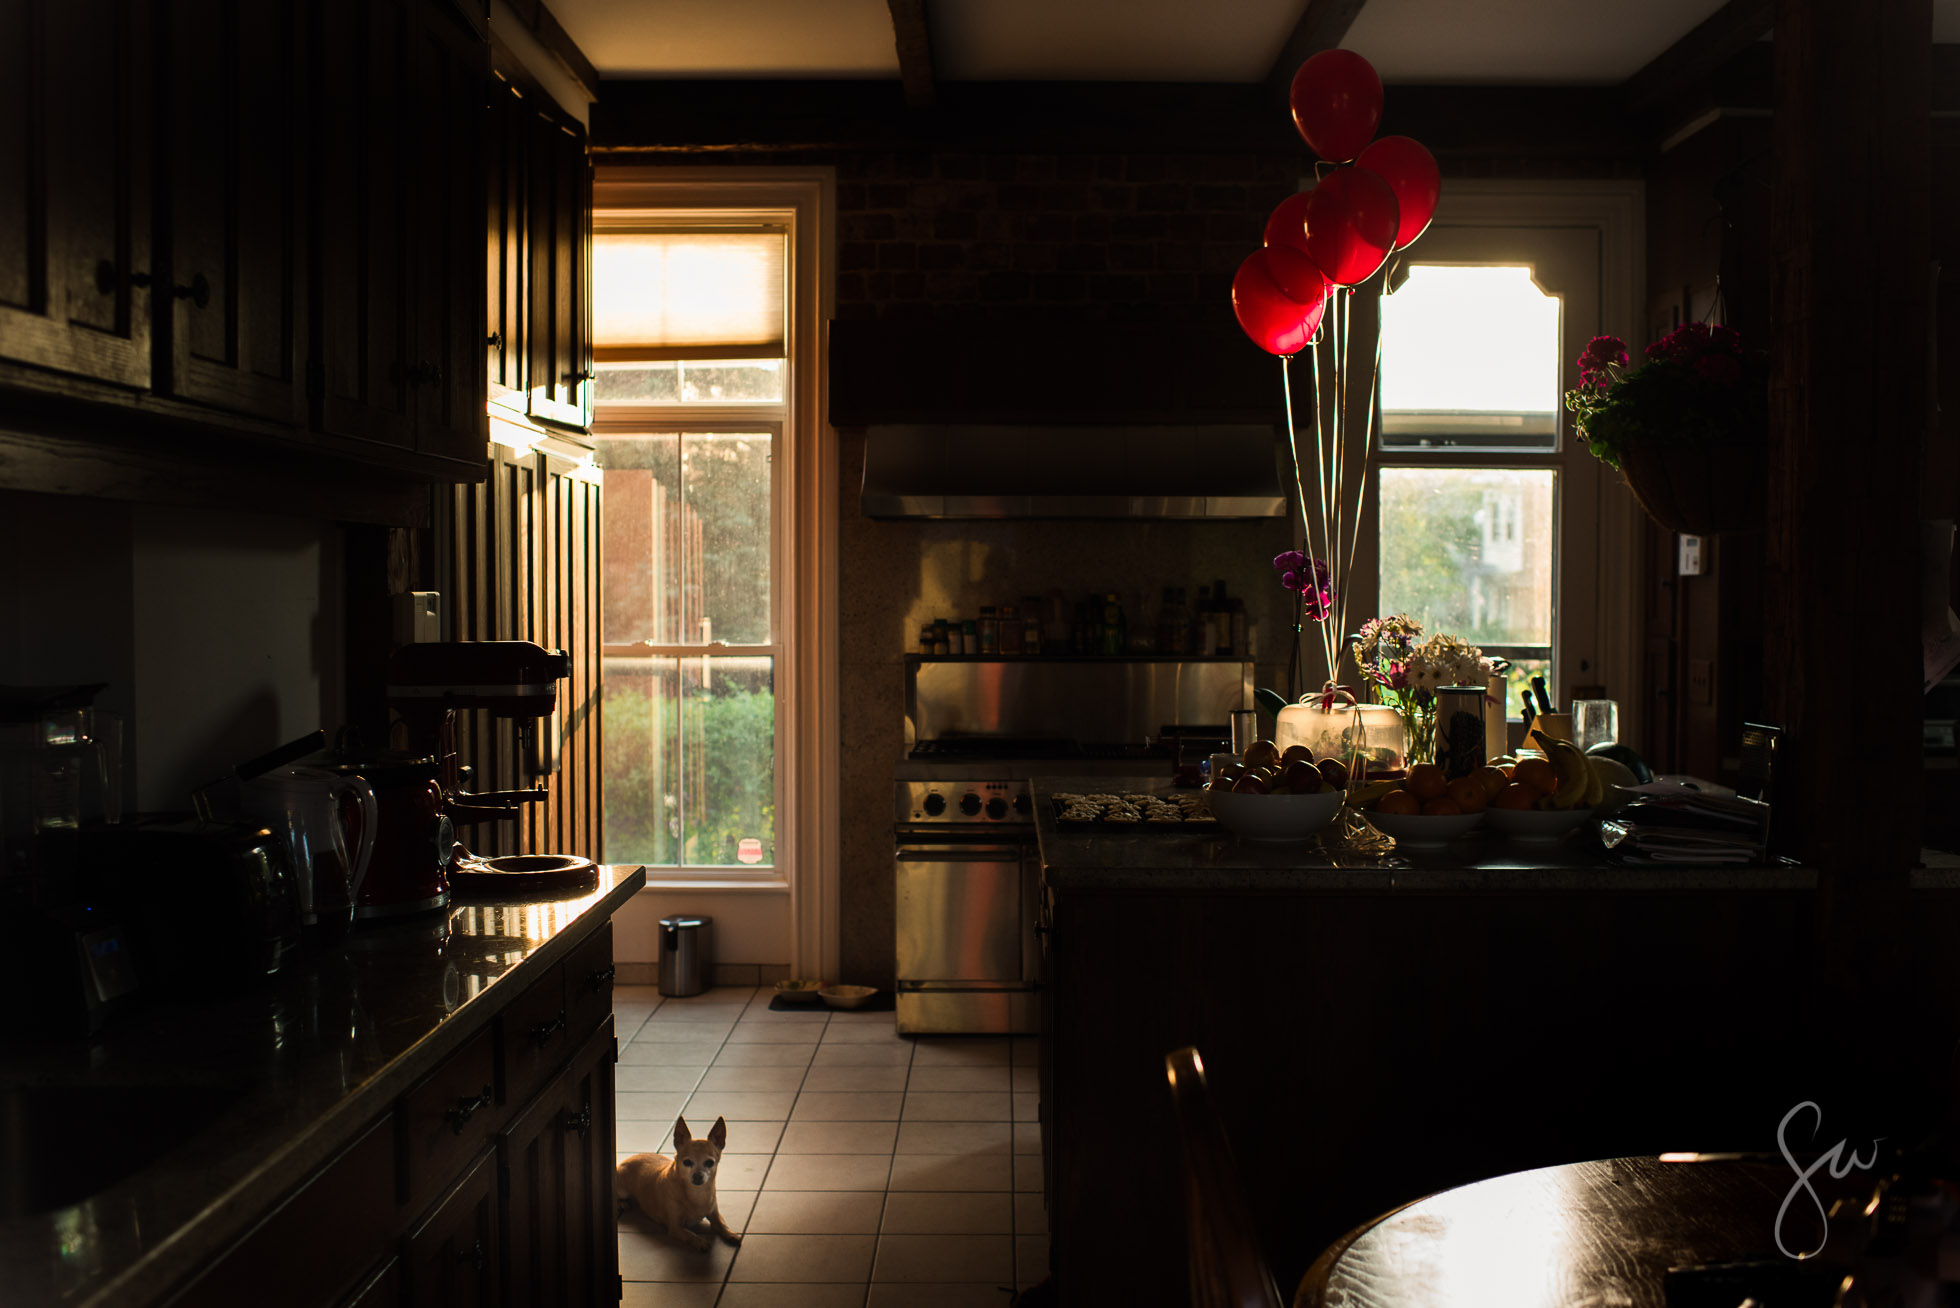 Everyday-Photo-of-Kitchen-in-the-Evening-with-Chihuahua-and-Red-Balloons-by-Sarah-Wilkerson-6513